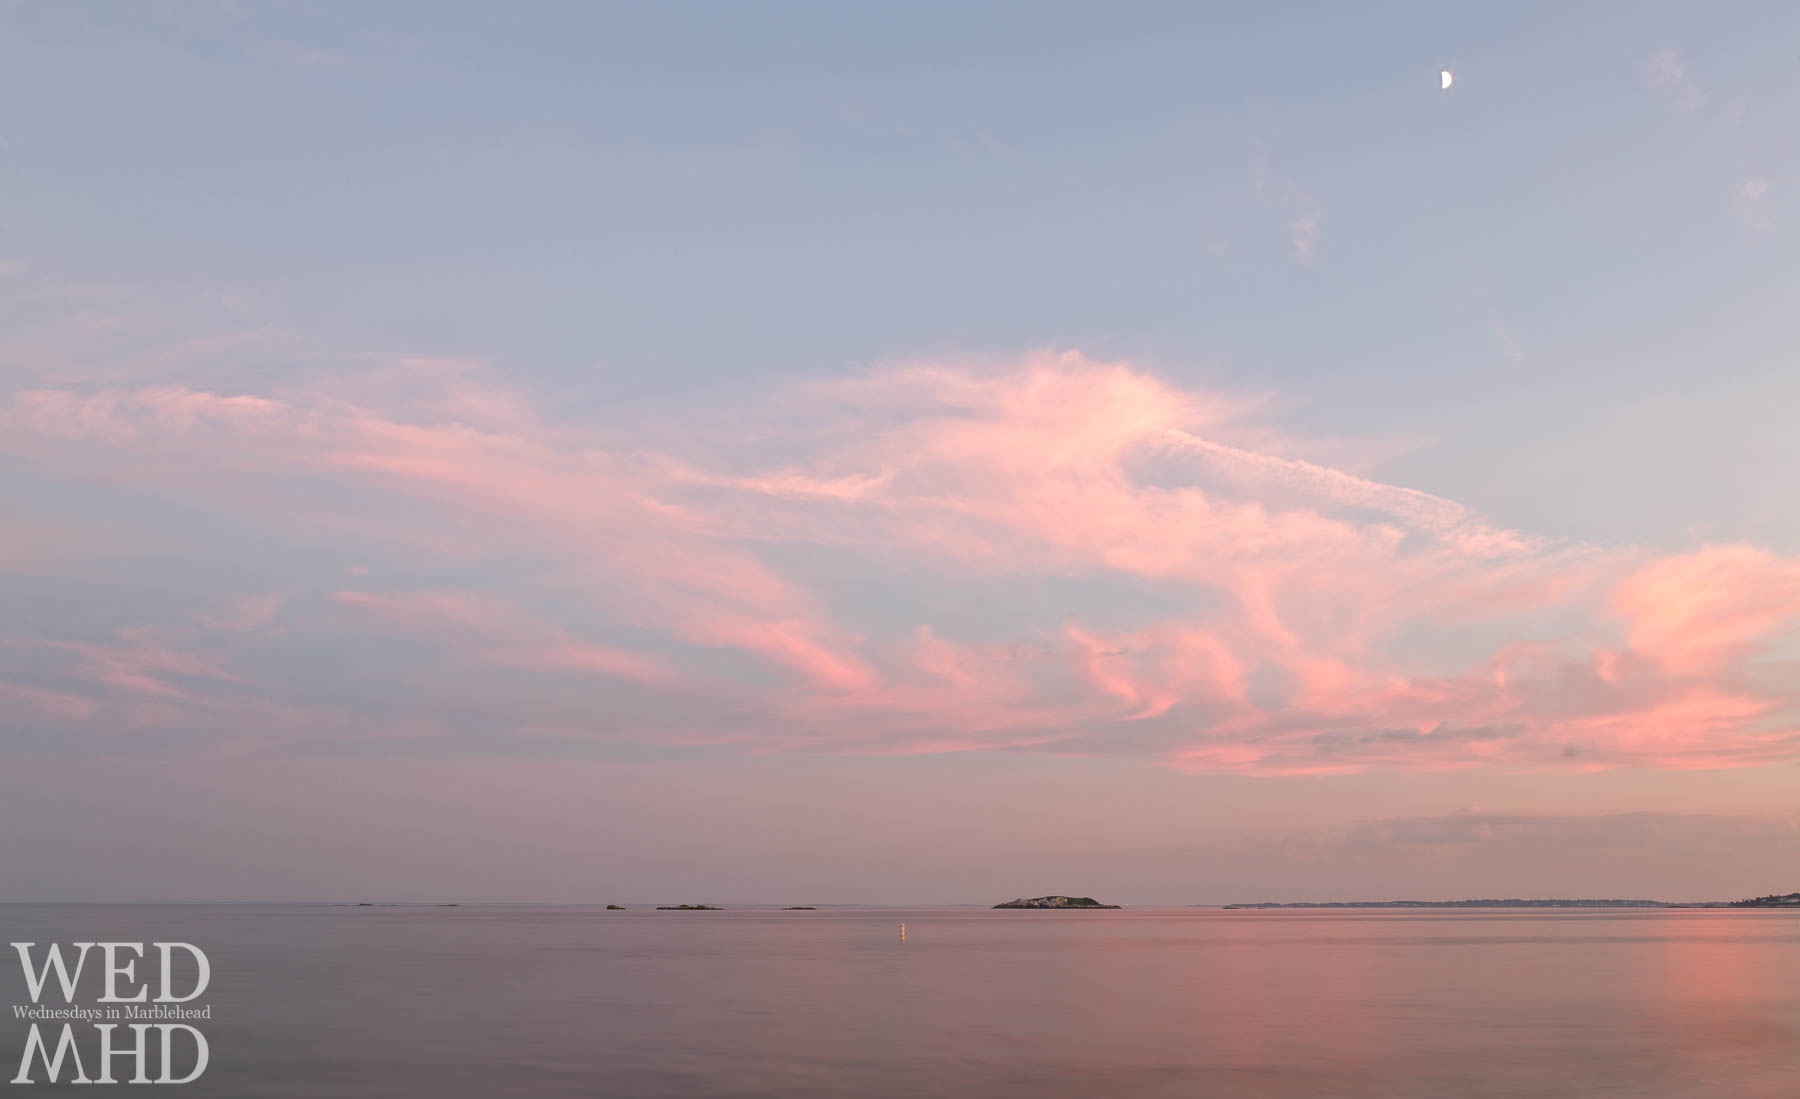 A moonlit sunset captured as a long exposure at Devereux Beach turns to ocean into still water and adds a soft reflection to the evening light